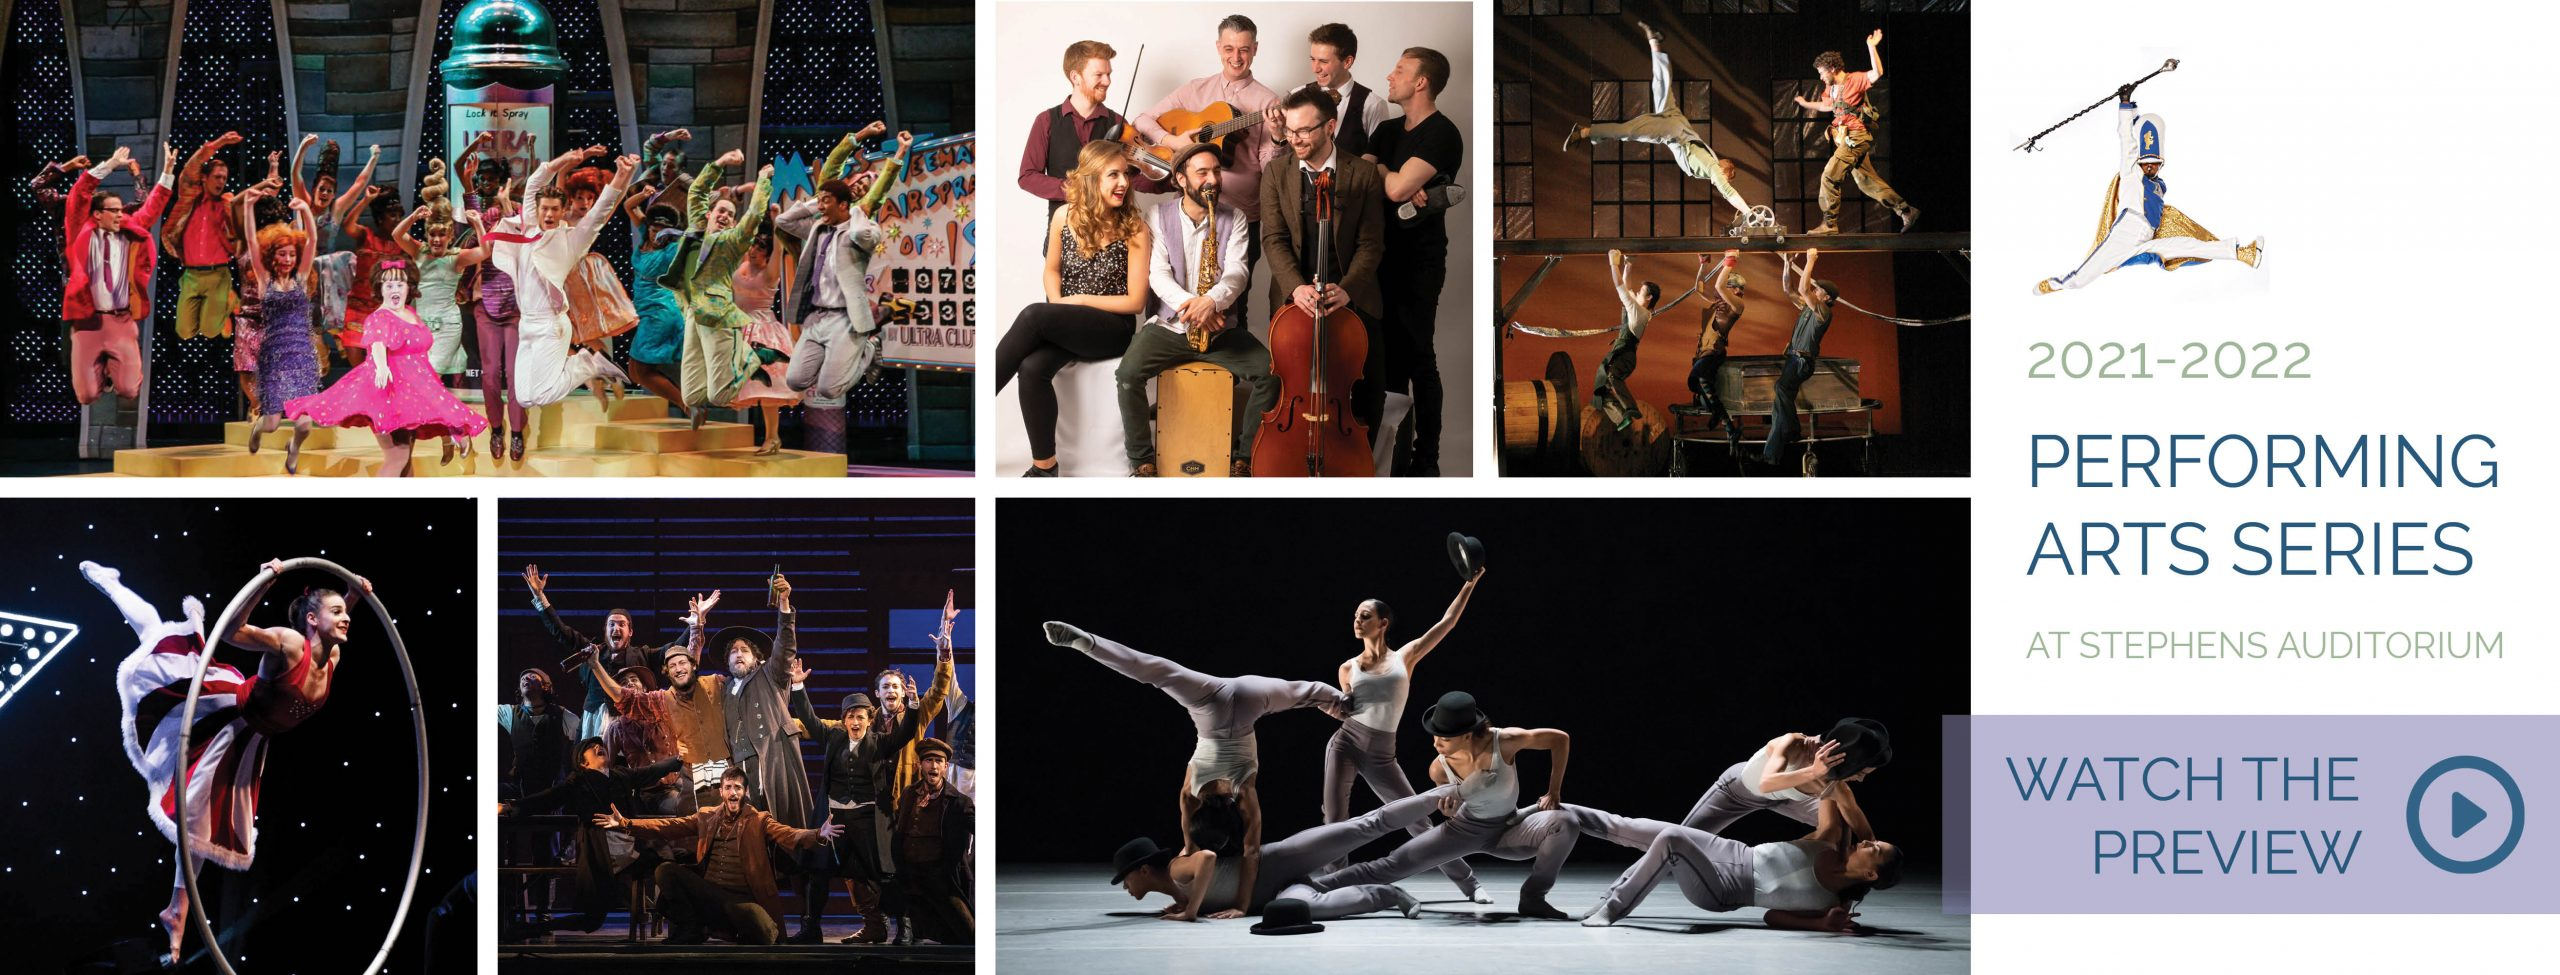 Watch the 2021-2022 Performing Arts Series Preview